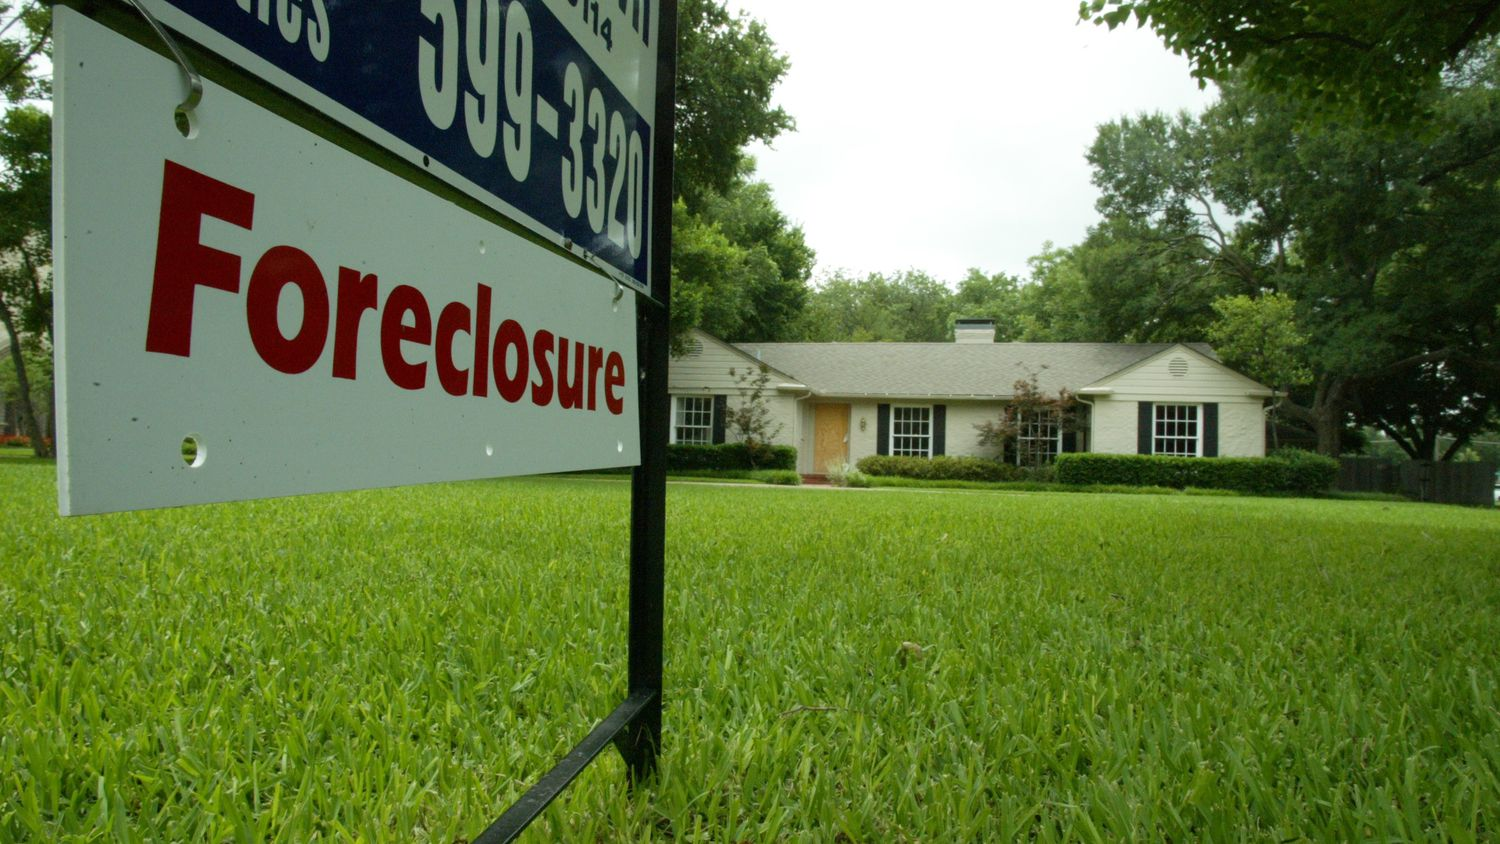 Home foreclosure filings are expected to rise because of the pandemic.